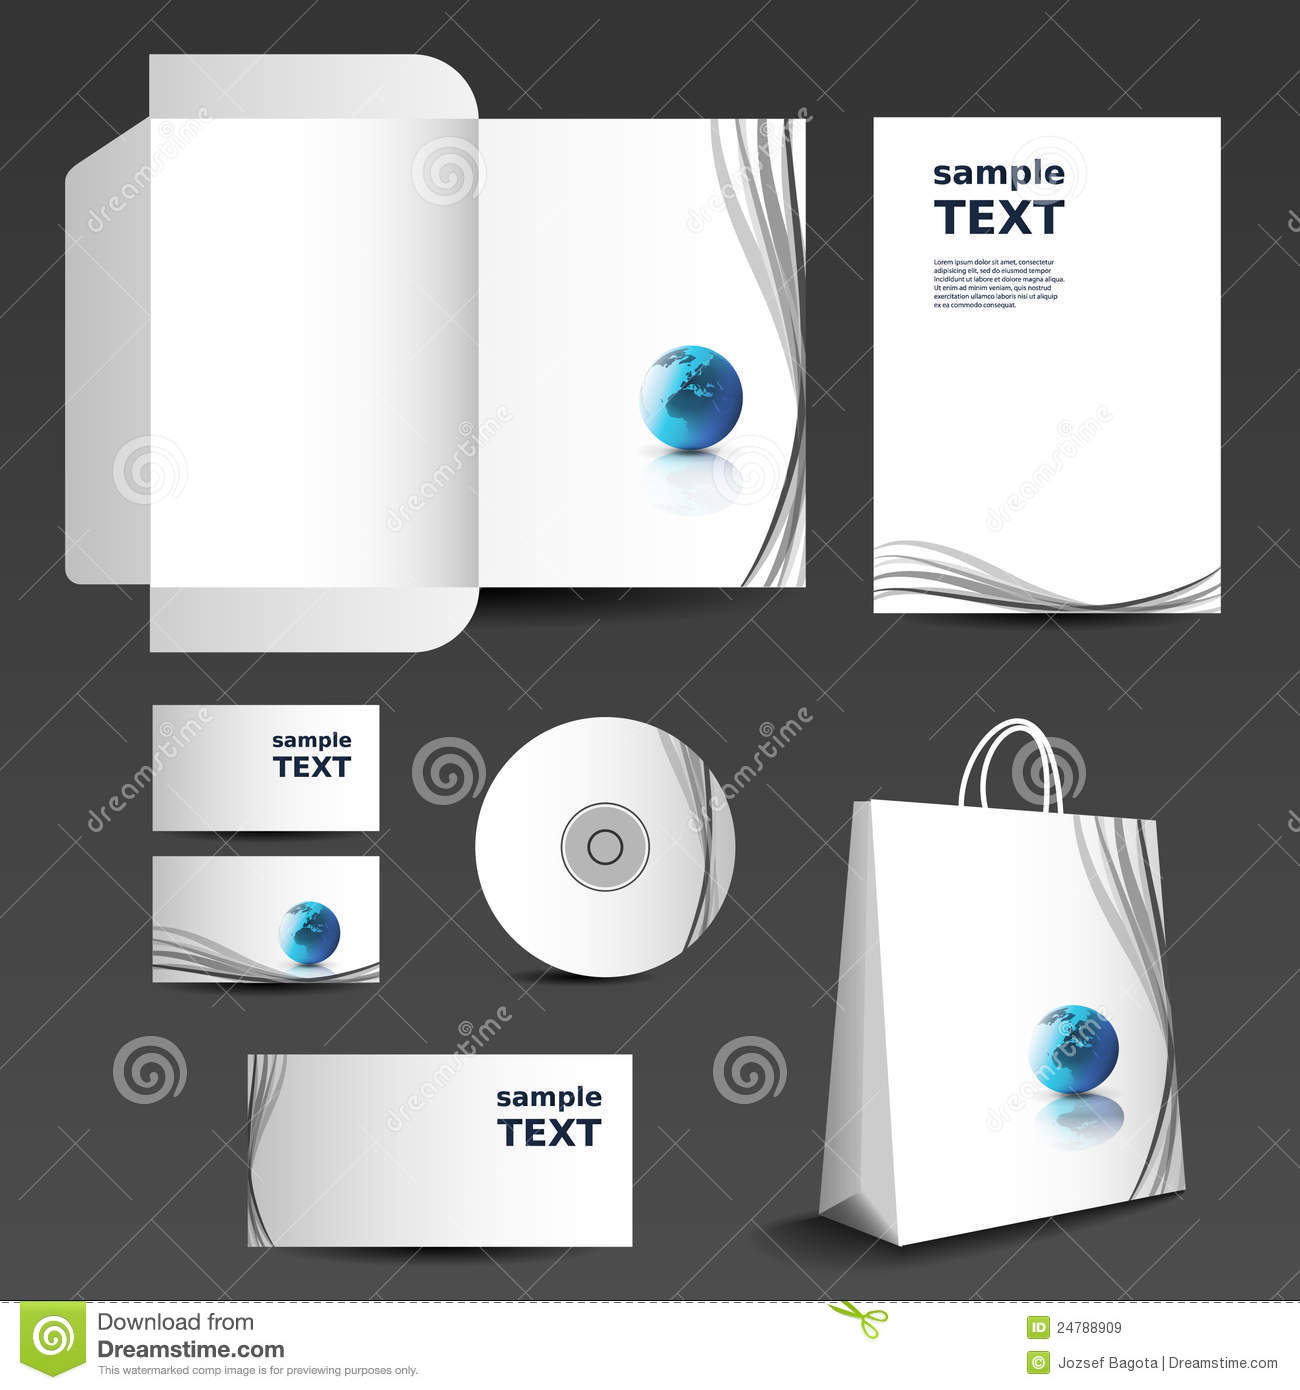 Stationery template design business set stock vector stationery template design business set accmission Images